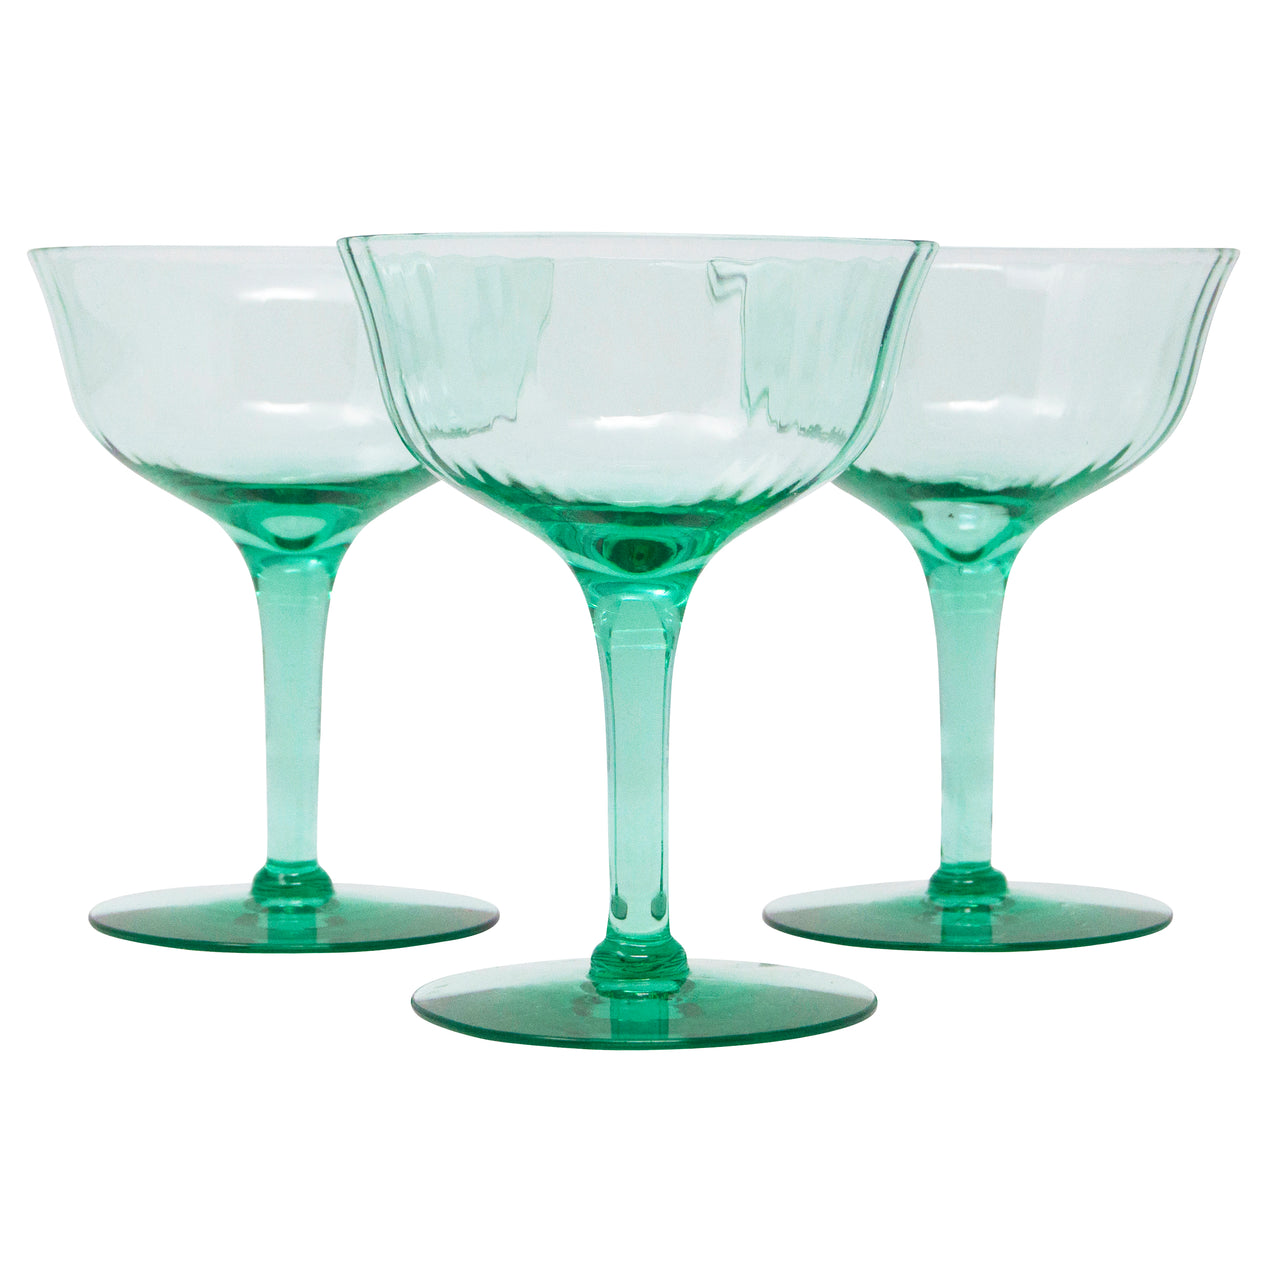 Vintage Teal Green Paneled Coupe Glasses | The Hour Shop